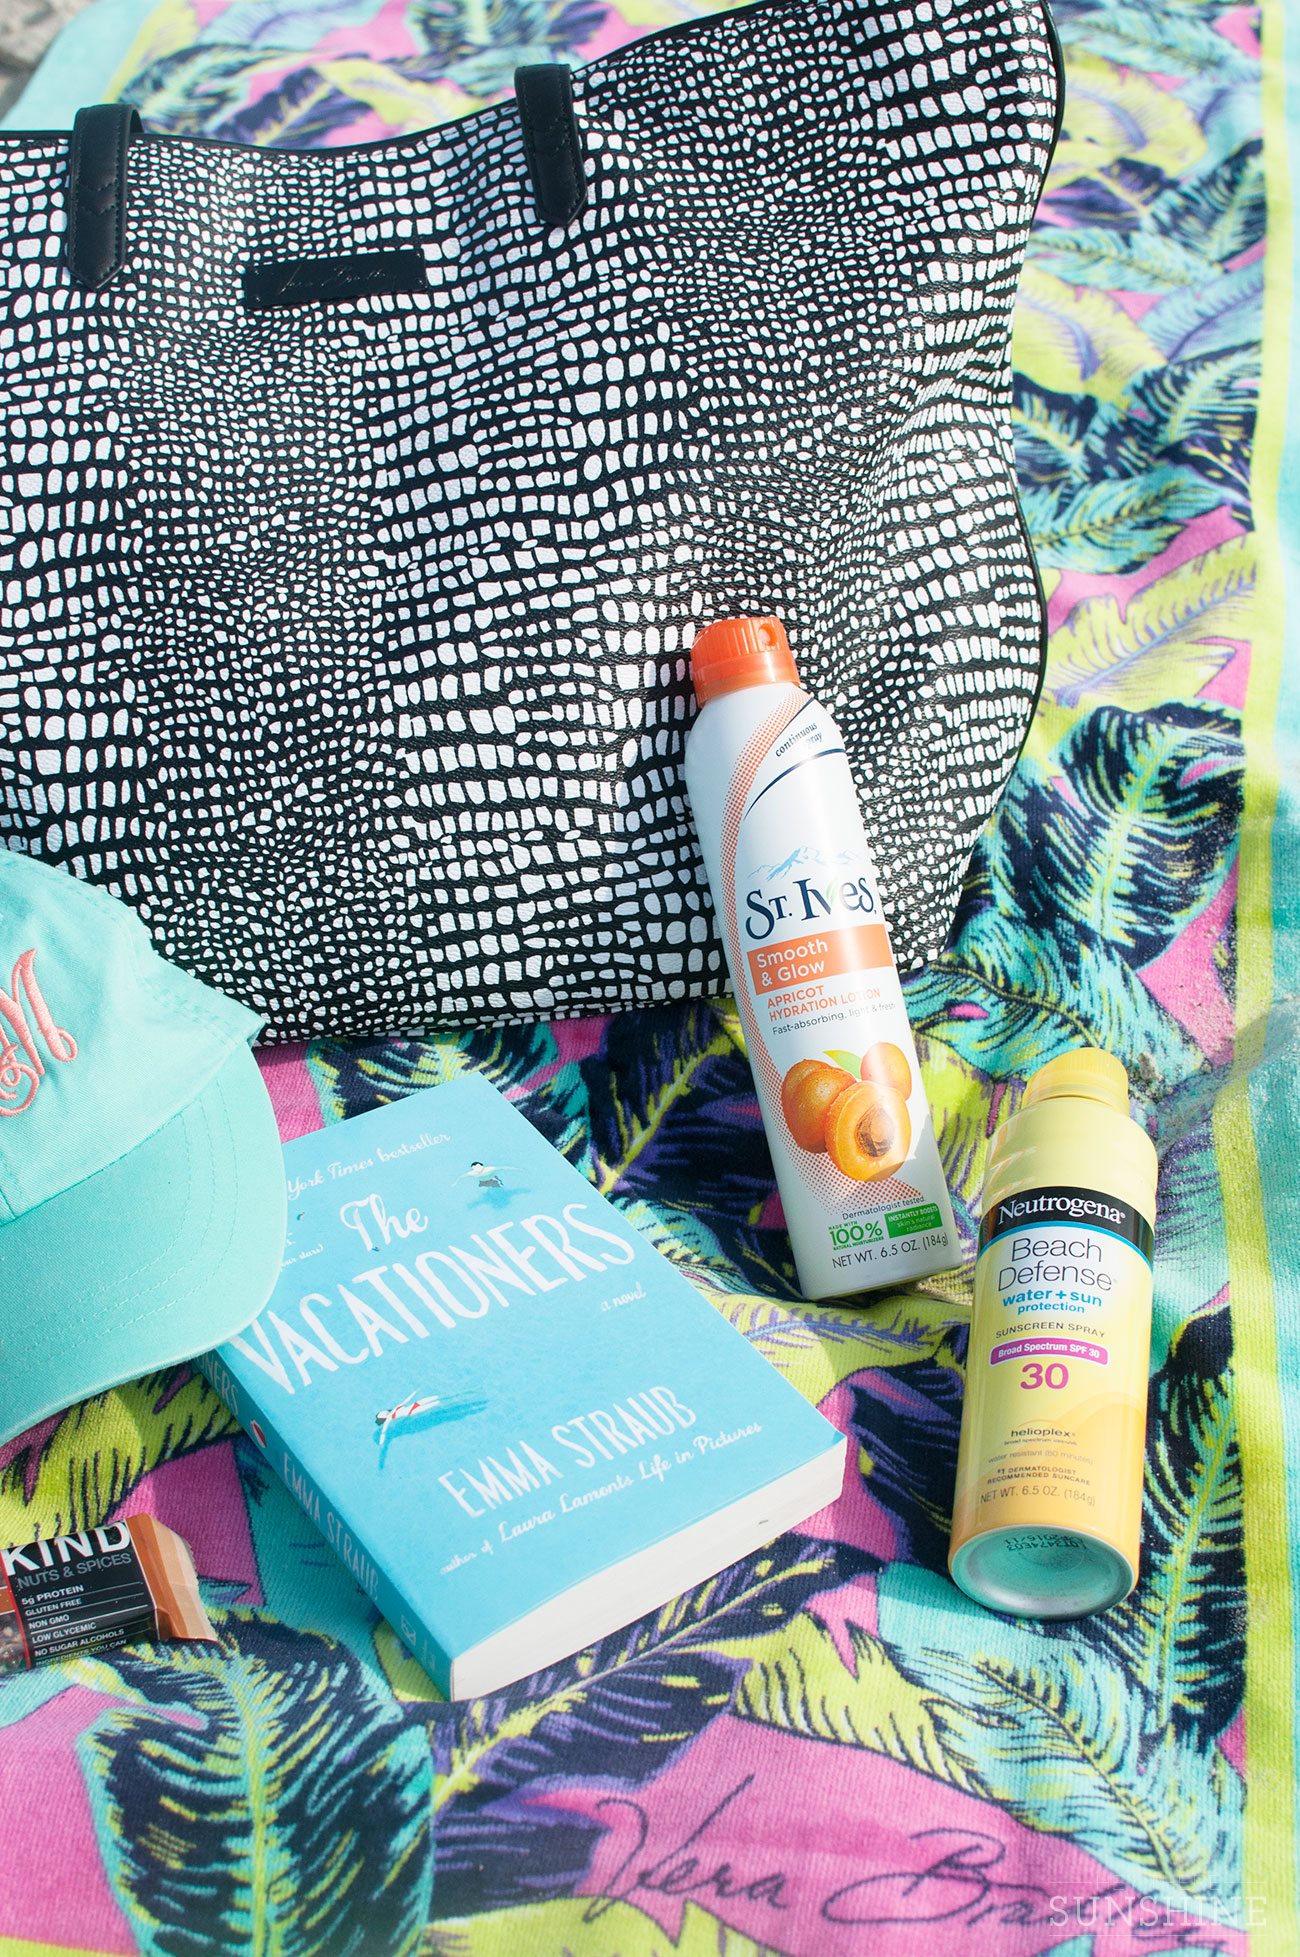 Don't forget to toss in a good book and some SPF.